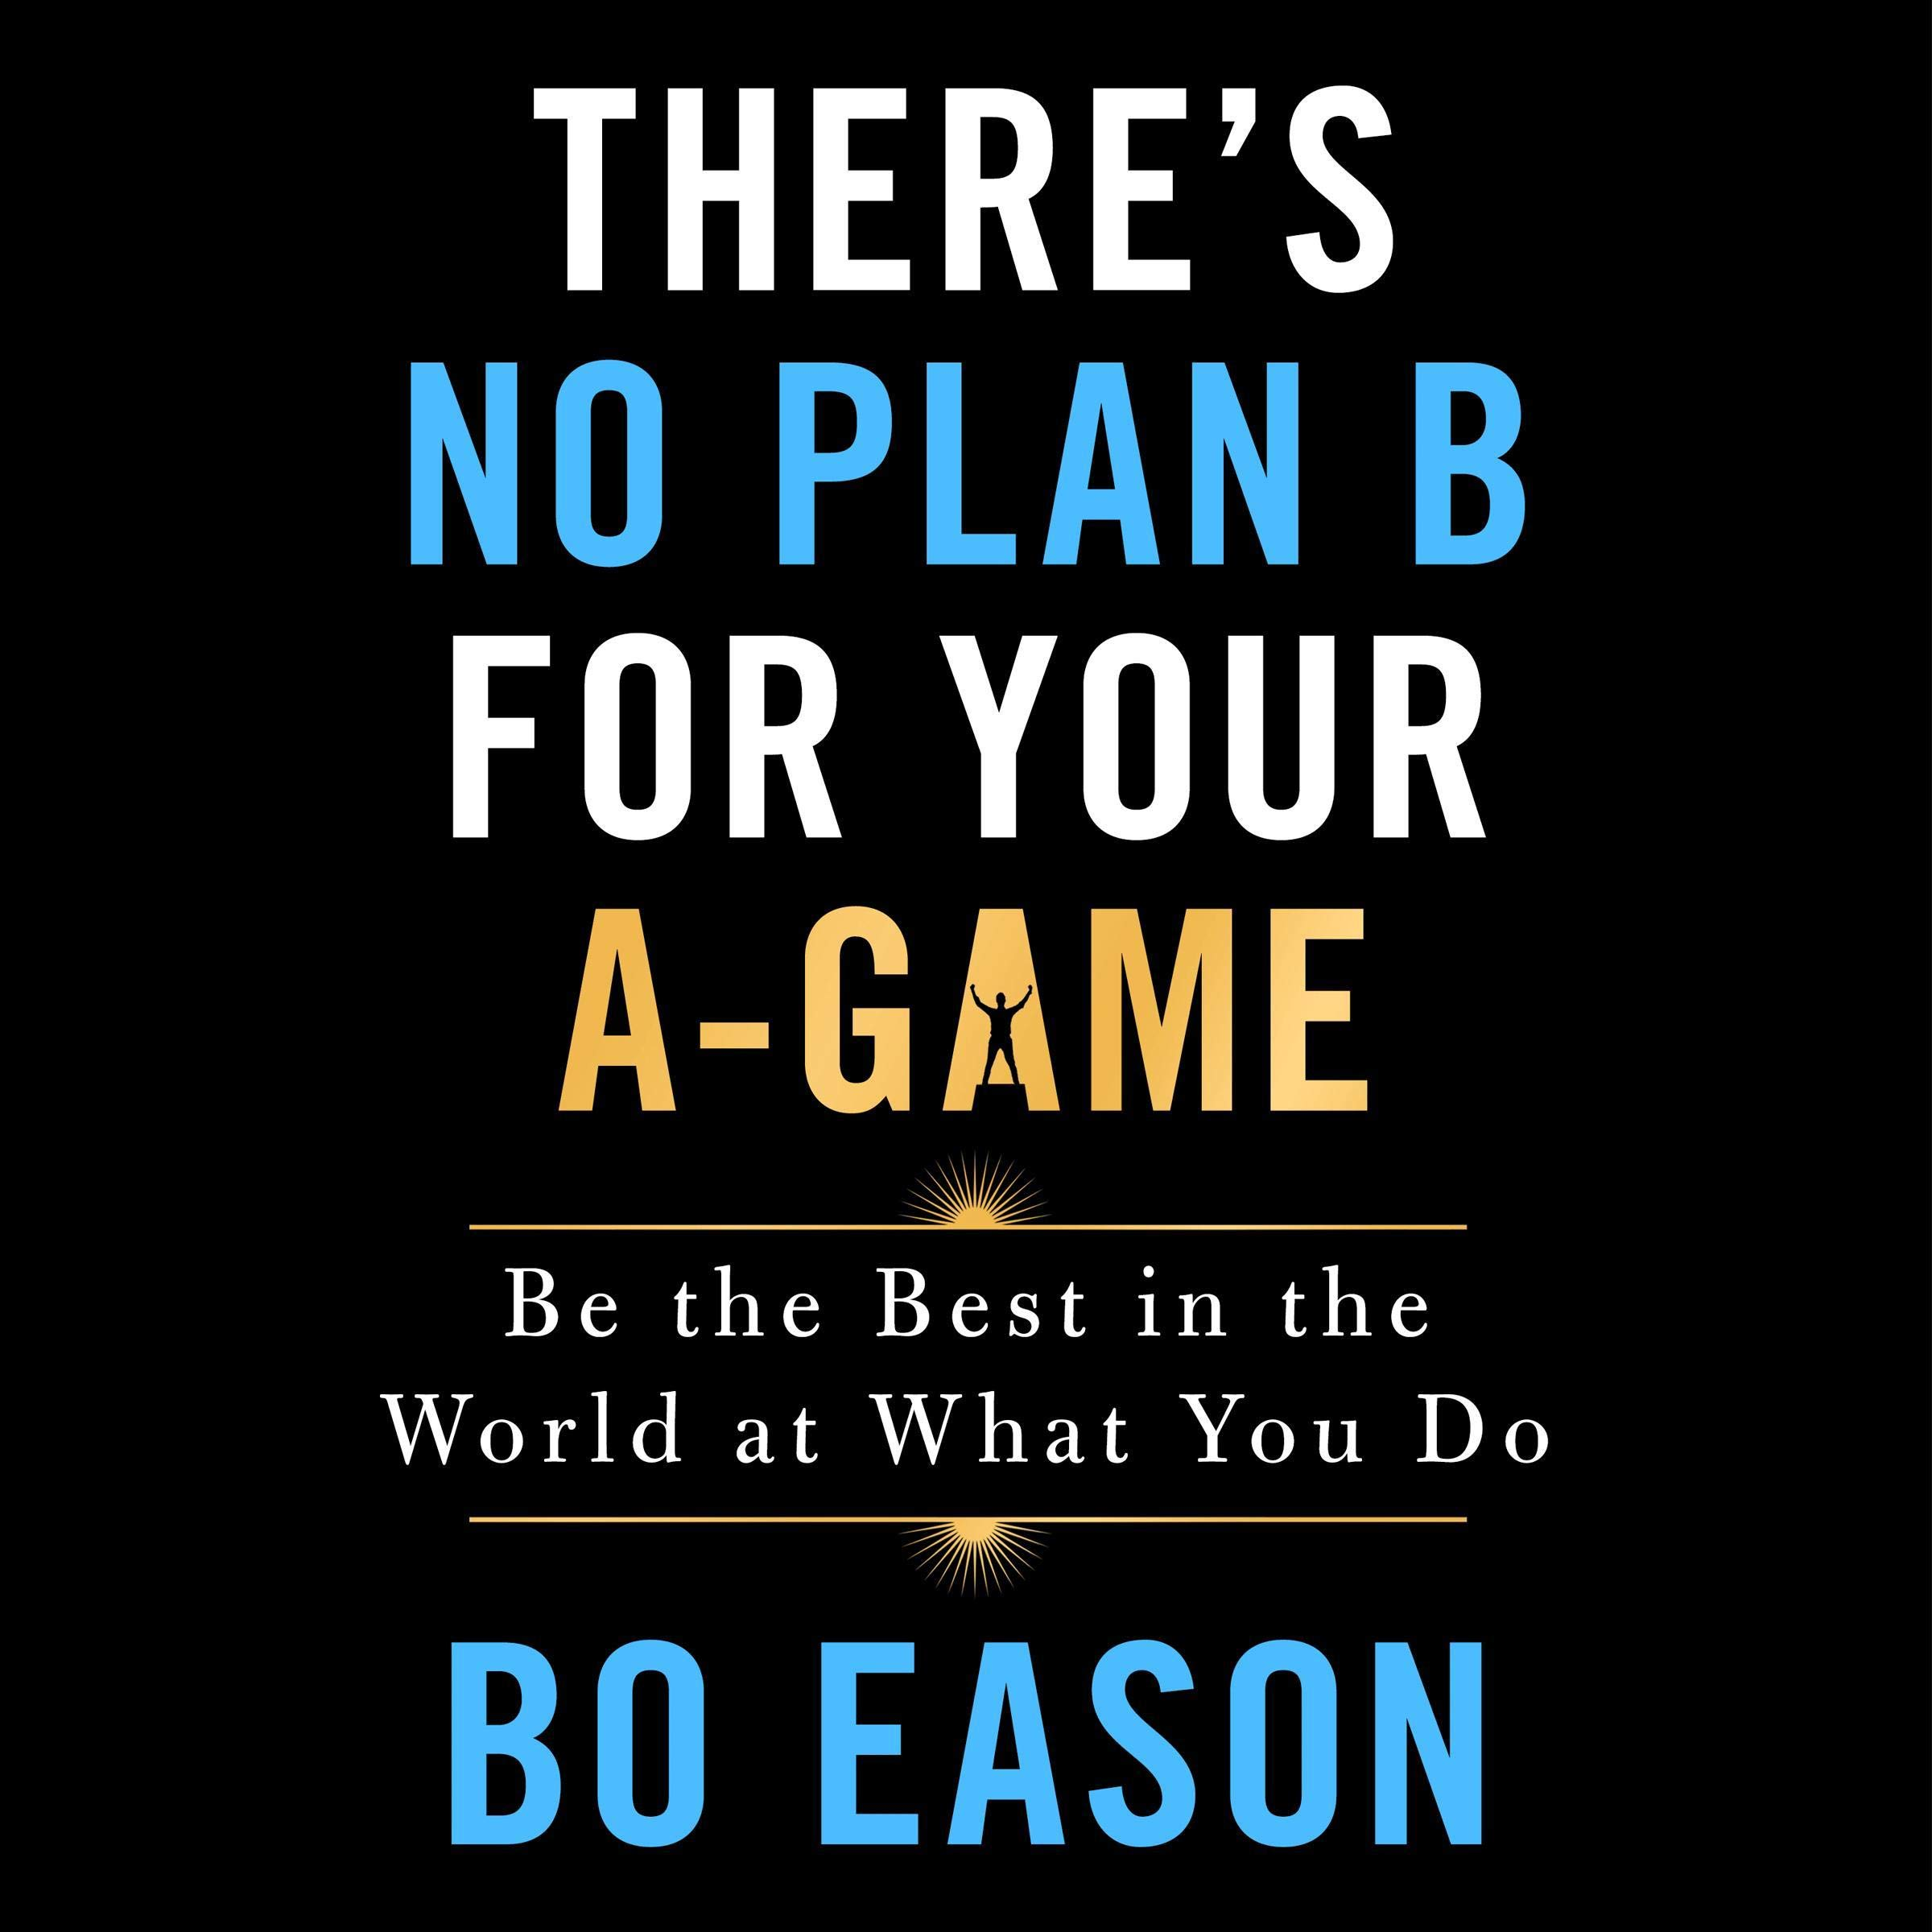 Image OfThere's No Plan B For Your A-Game: Be The Best In The World At What You Do